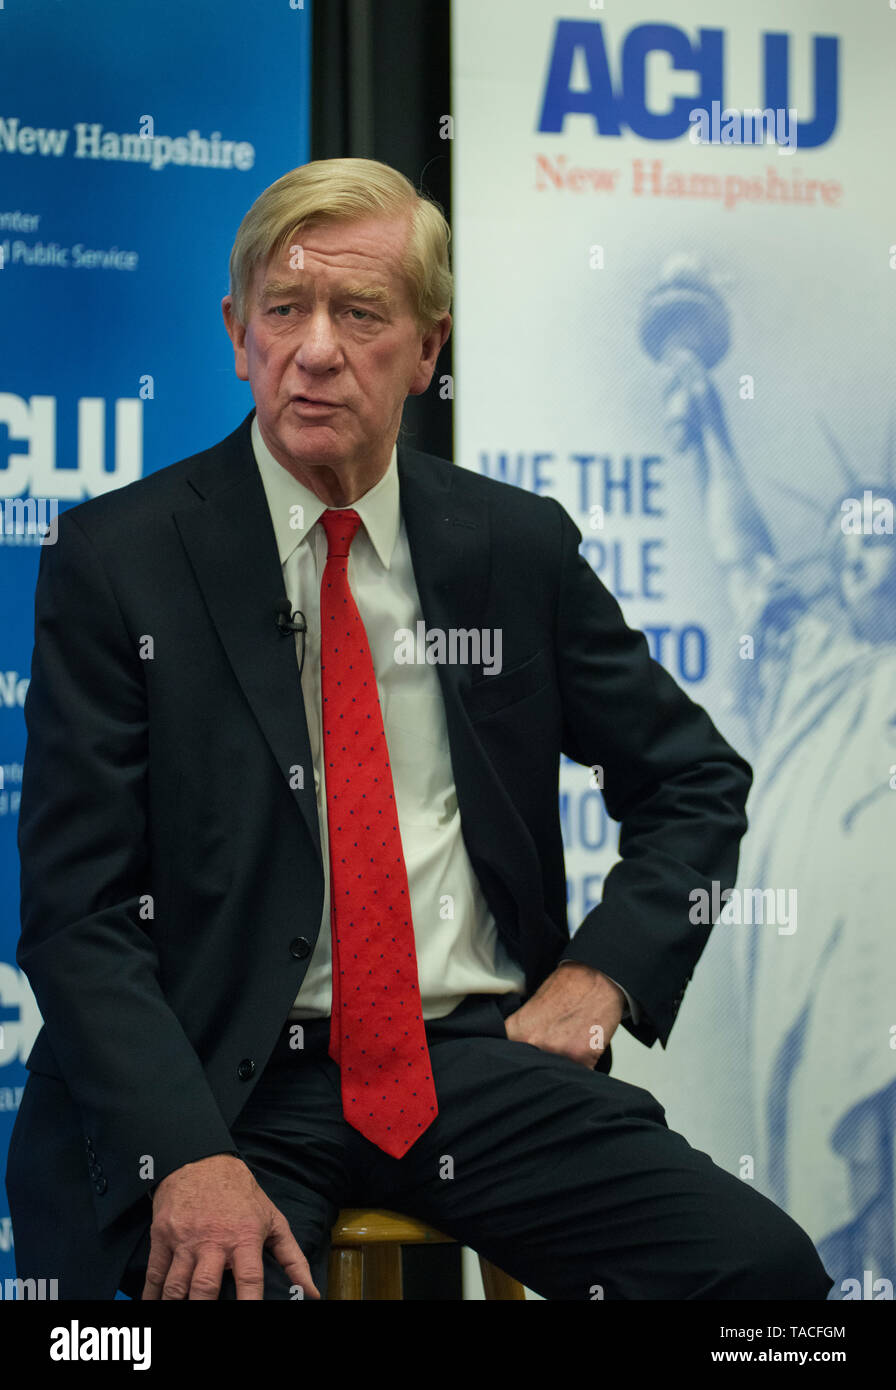 Concord, NH, USA May 23 2019.  Republican Presidential candidate and former Massachusetts Governor Bill Weld spoke to less than 100 people at the University of New Hampshire School of Law in Concord, NH.  The event, Civil Liberties & The Presidency, was organized by the New Hampshire American Civil Liberties Union (ACLU). - Stock Image